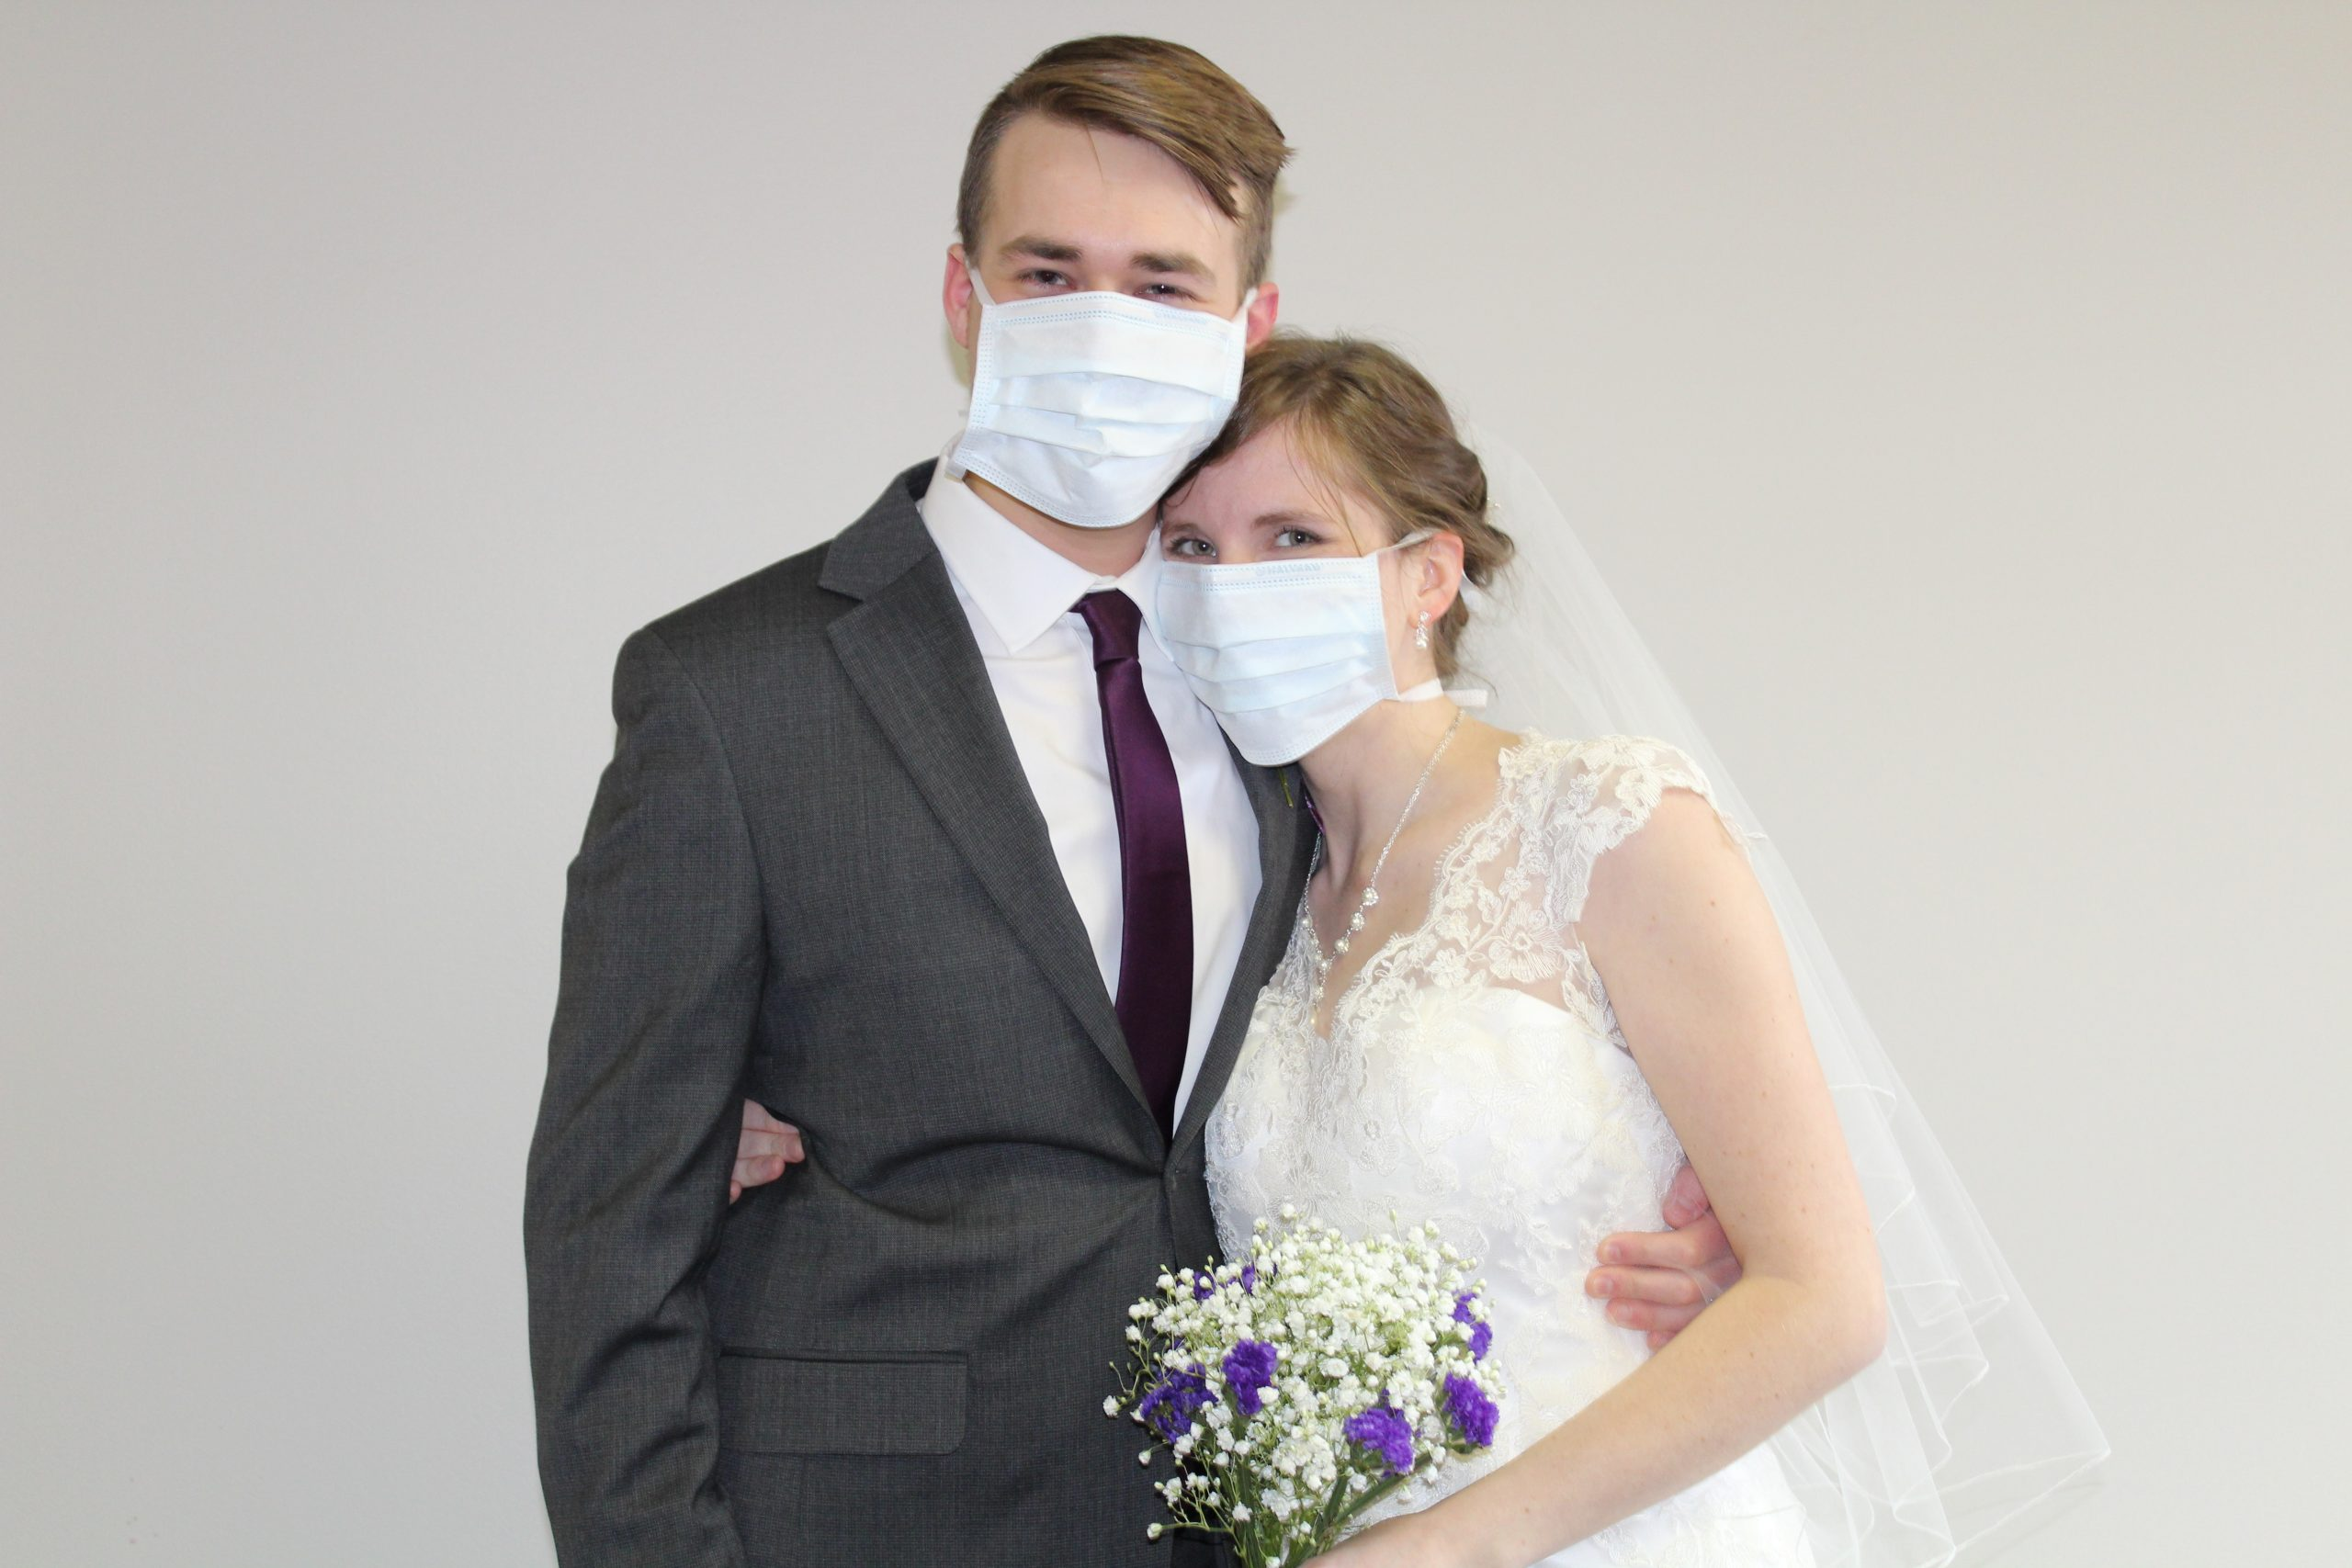 Sam and Emma Johnson with face masks on